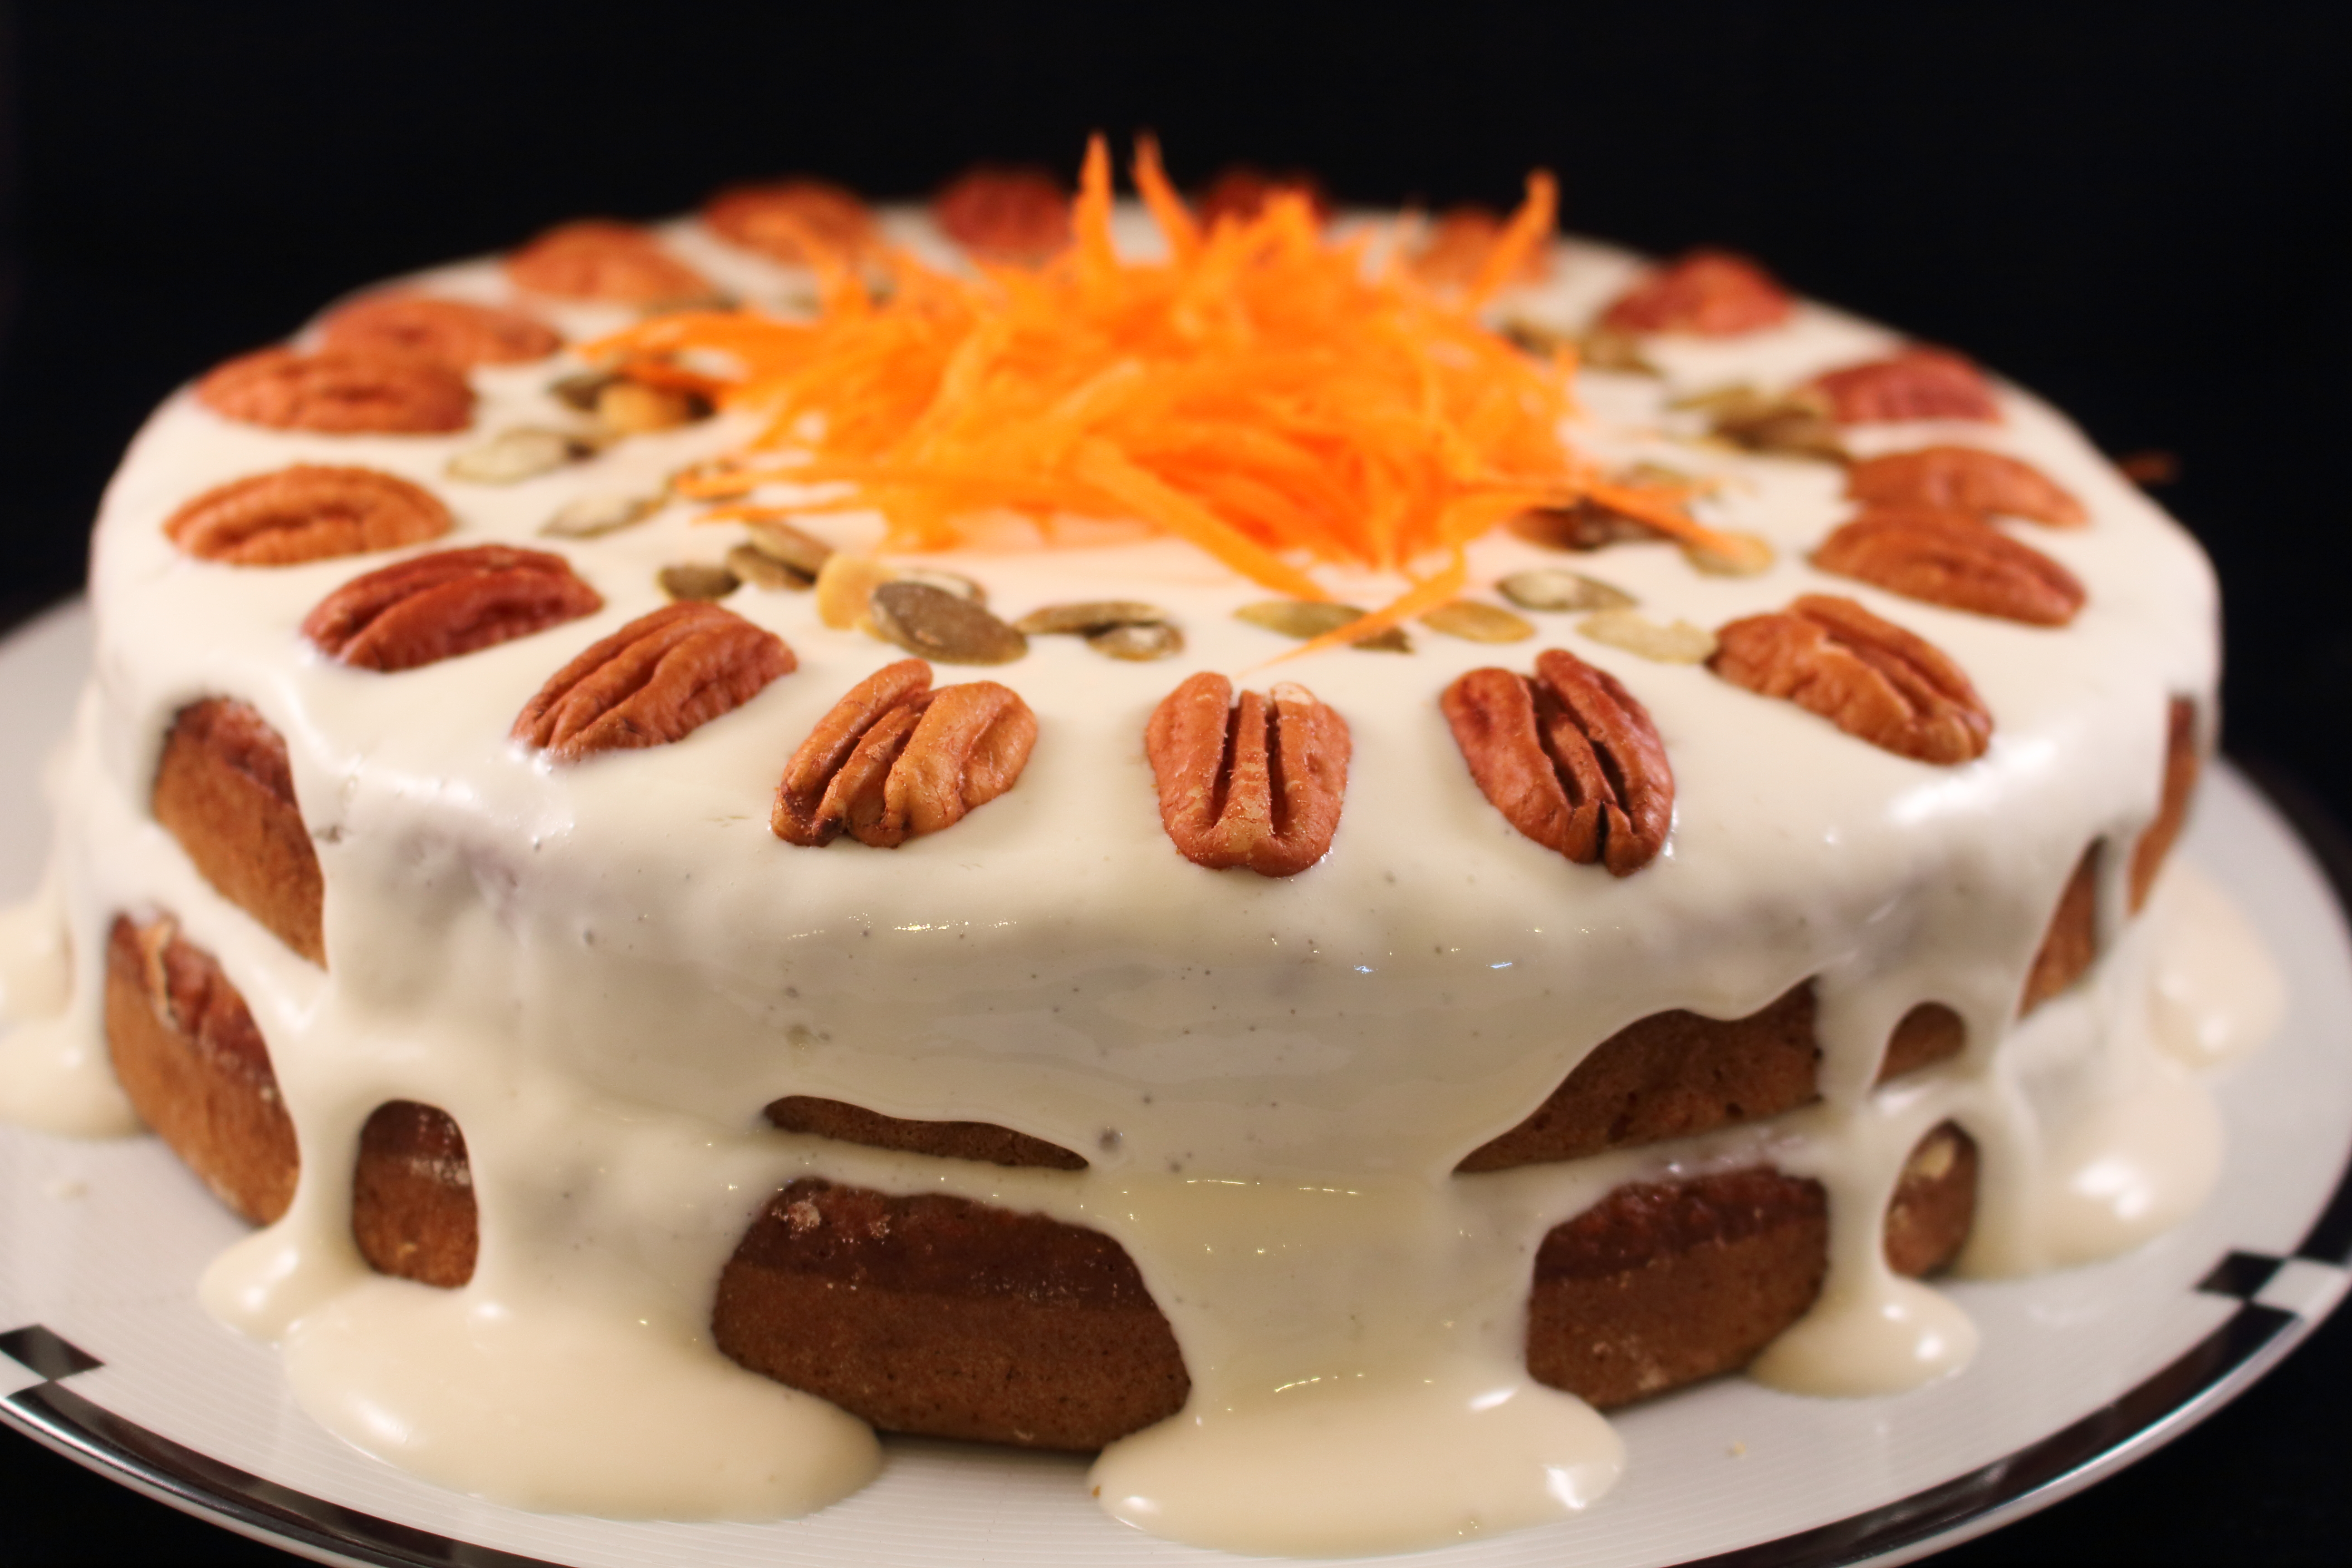 Substitute For Carrots In Carrot Cake